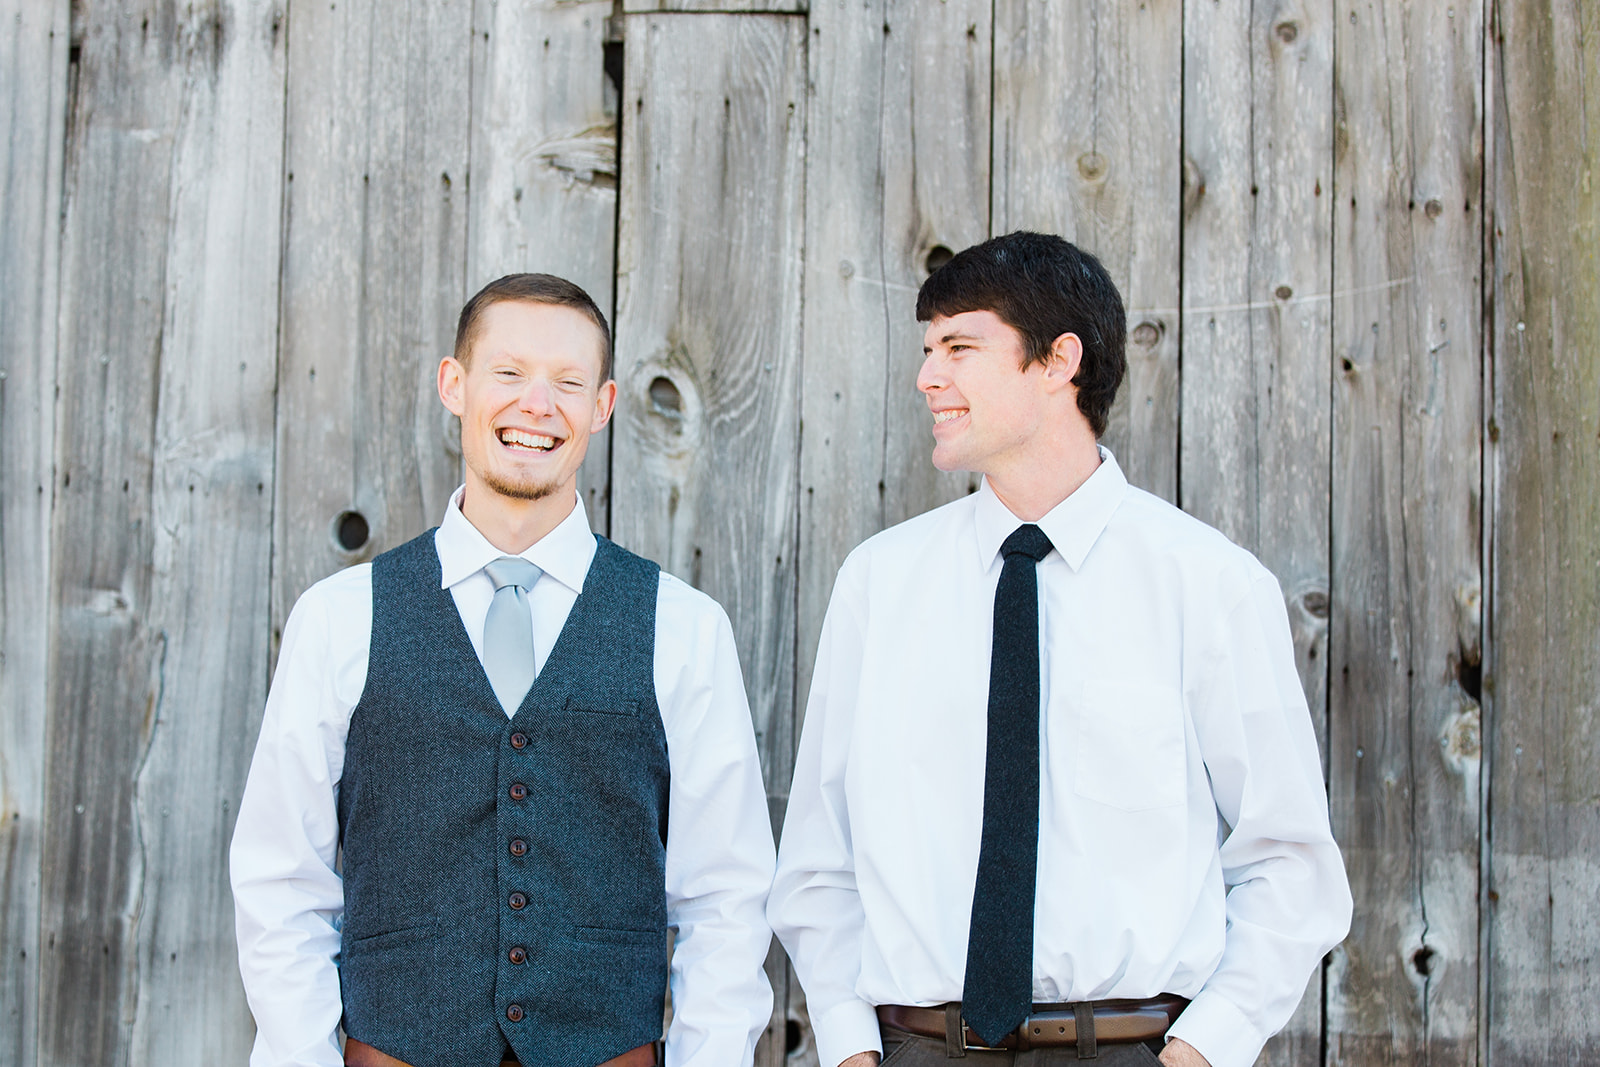 spokane wedding dress groomsmen